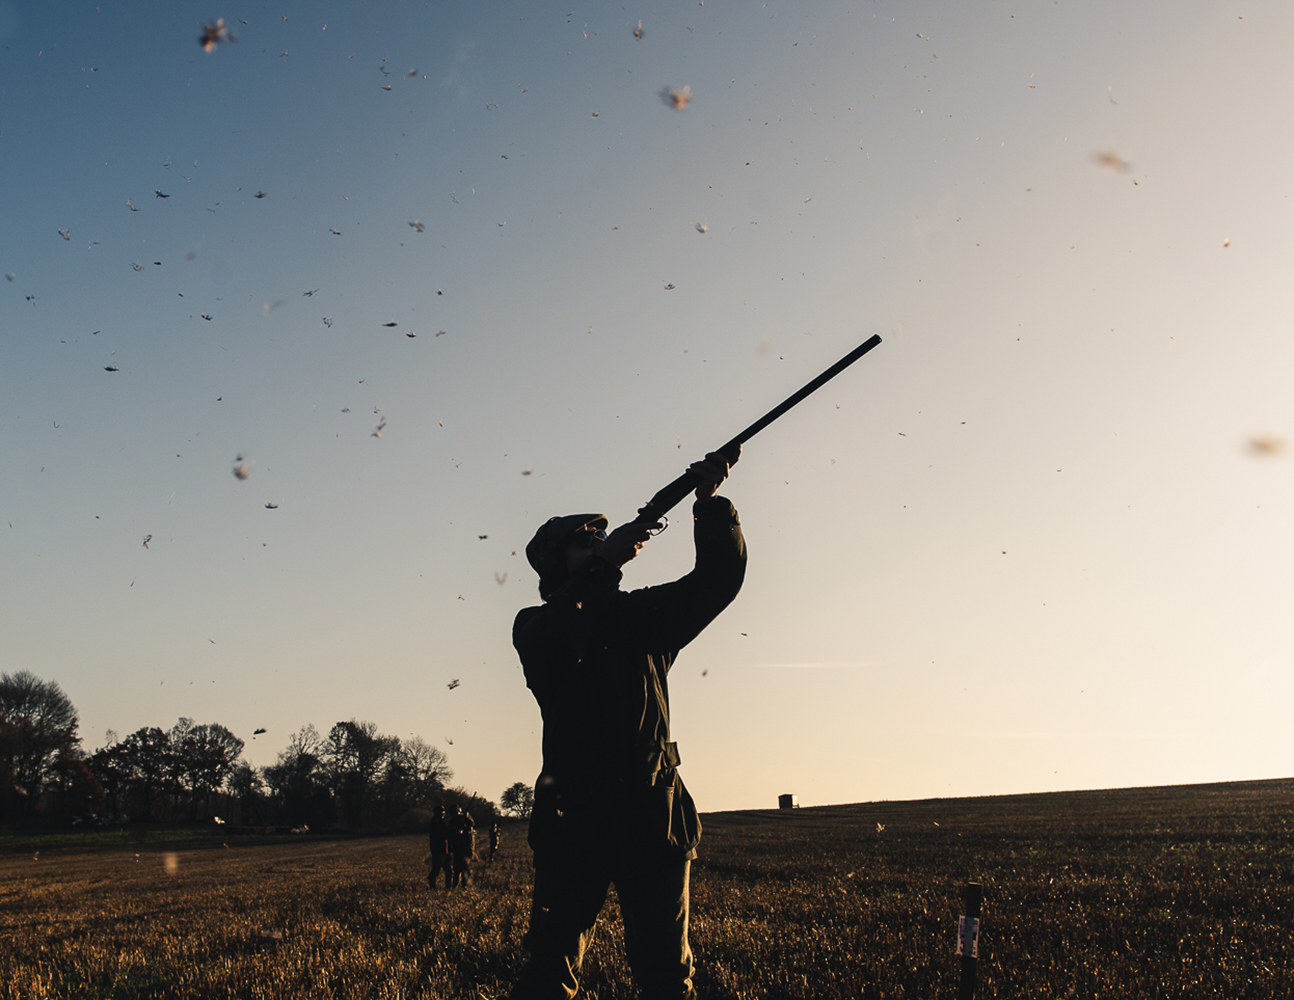 game-shooting pheasant fieldsports photographer based in the Cotswolds specialising in atmospheric images of countryside images